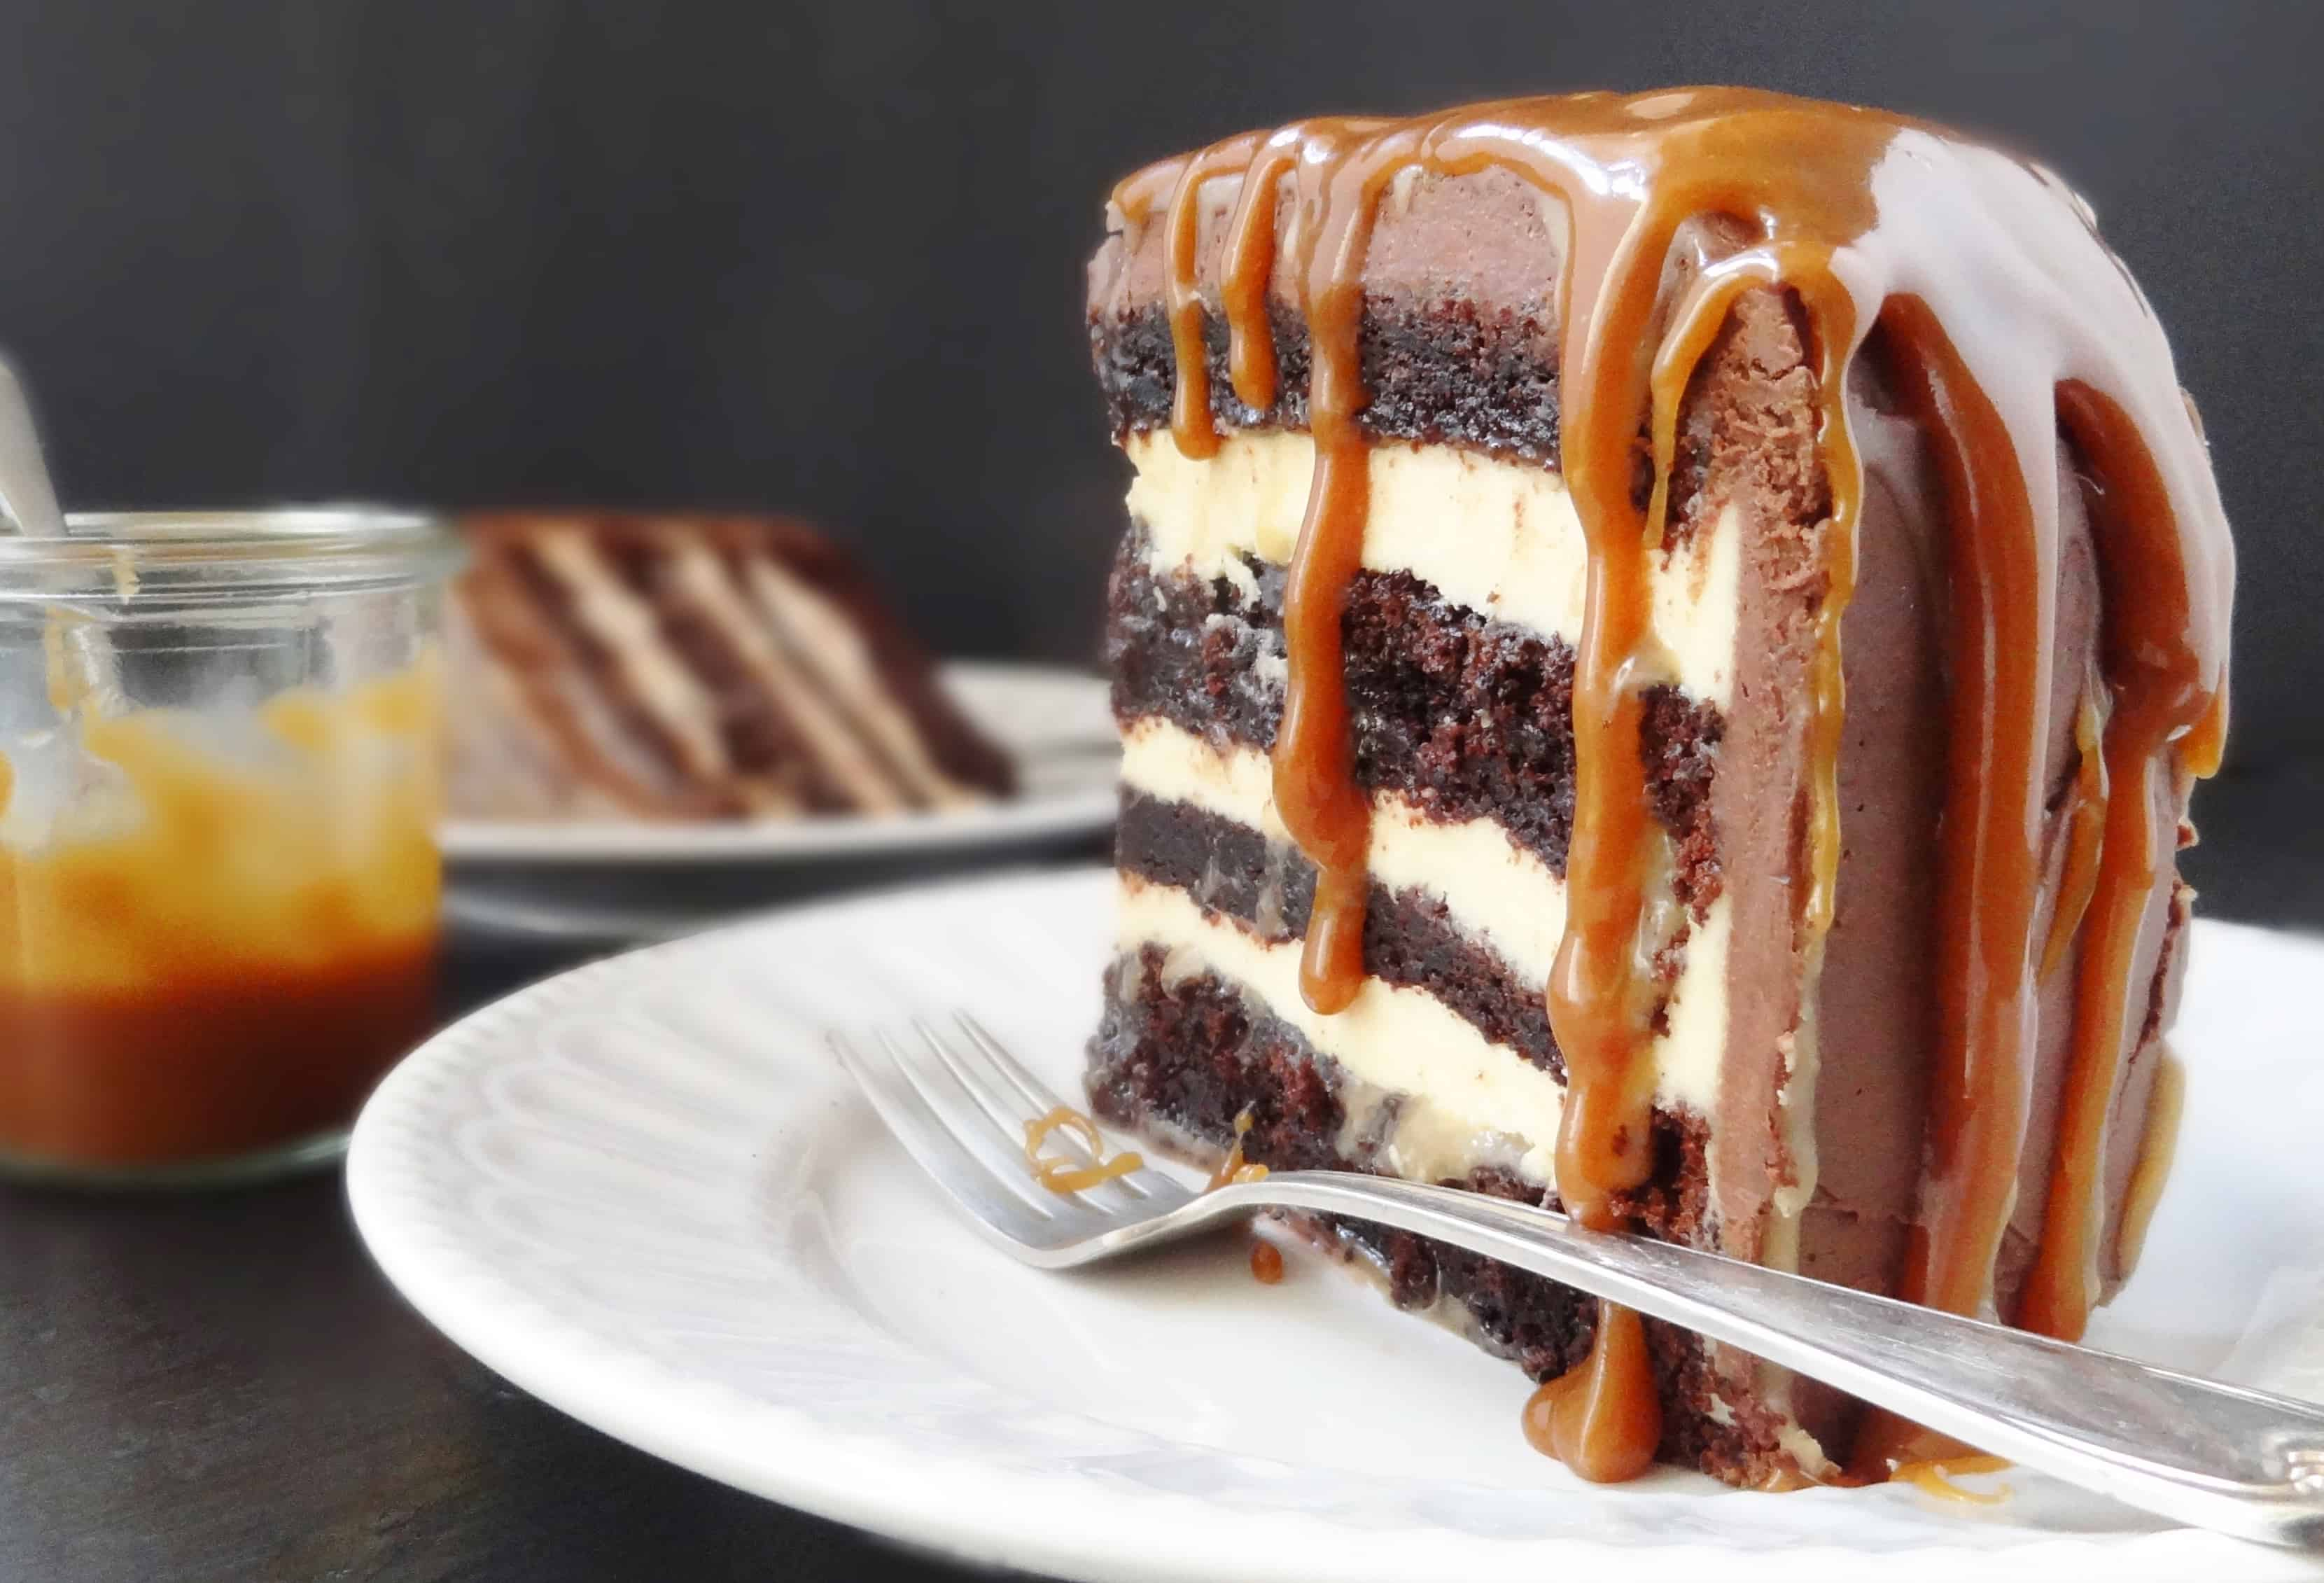 Chocolate And Salted Caramel Fudge Cake